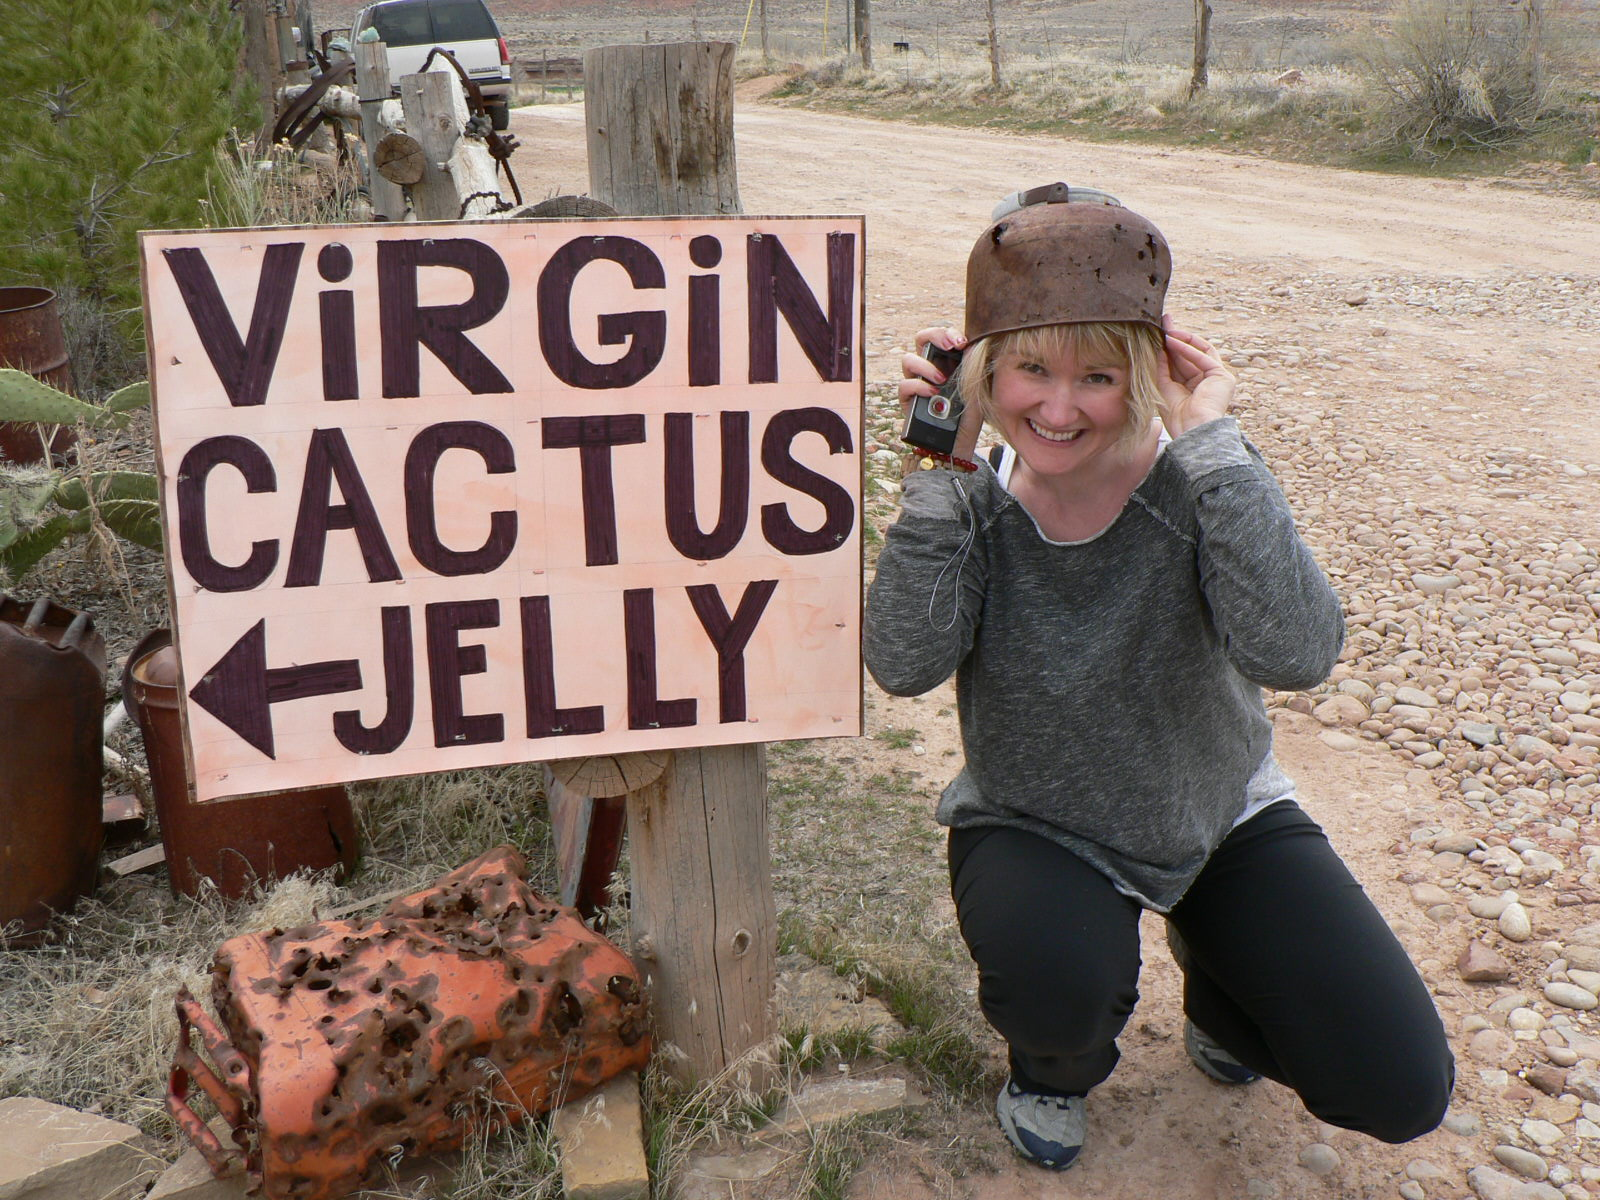 Virgin Cactus Jelly